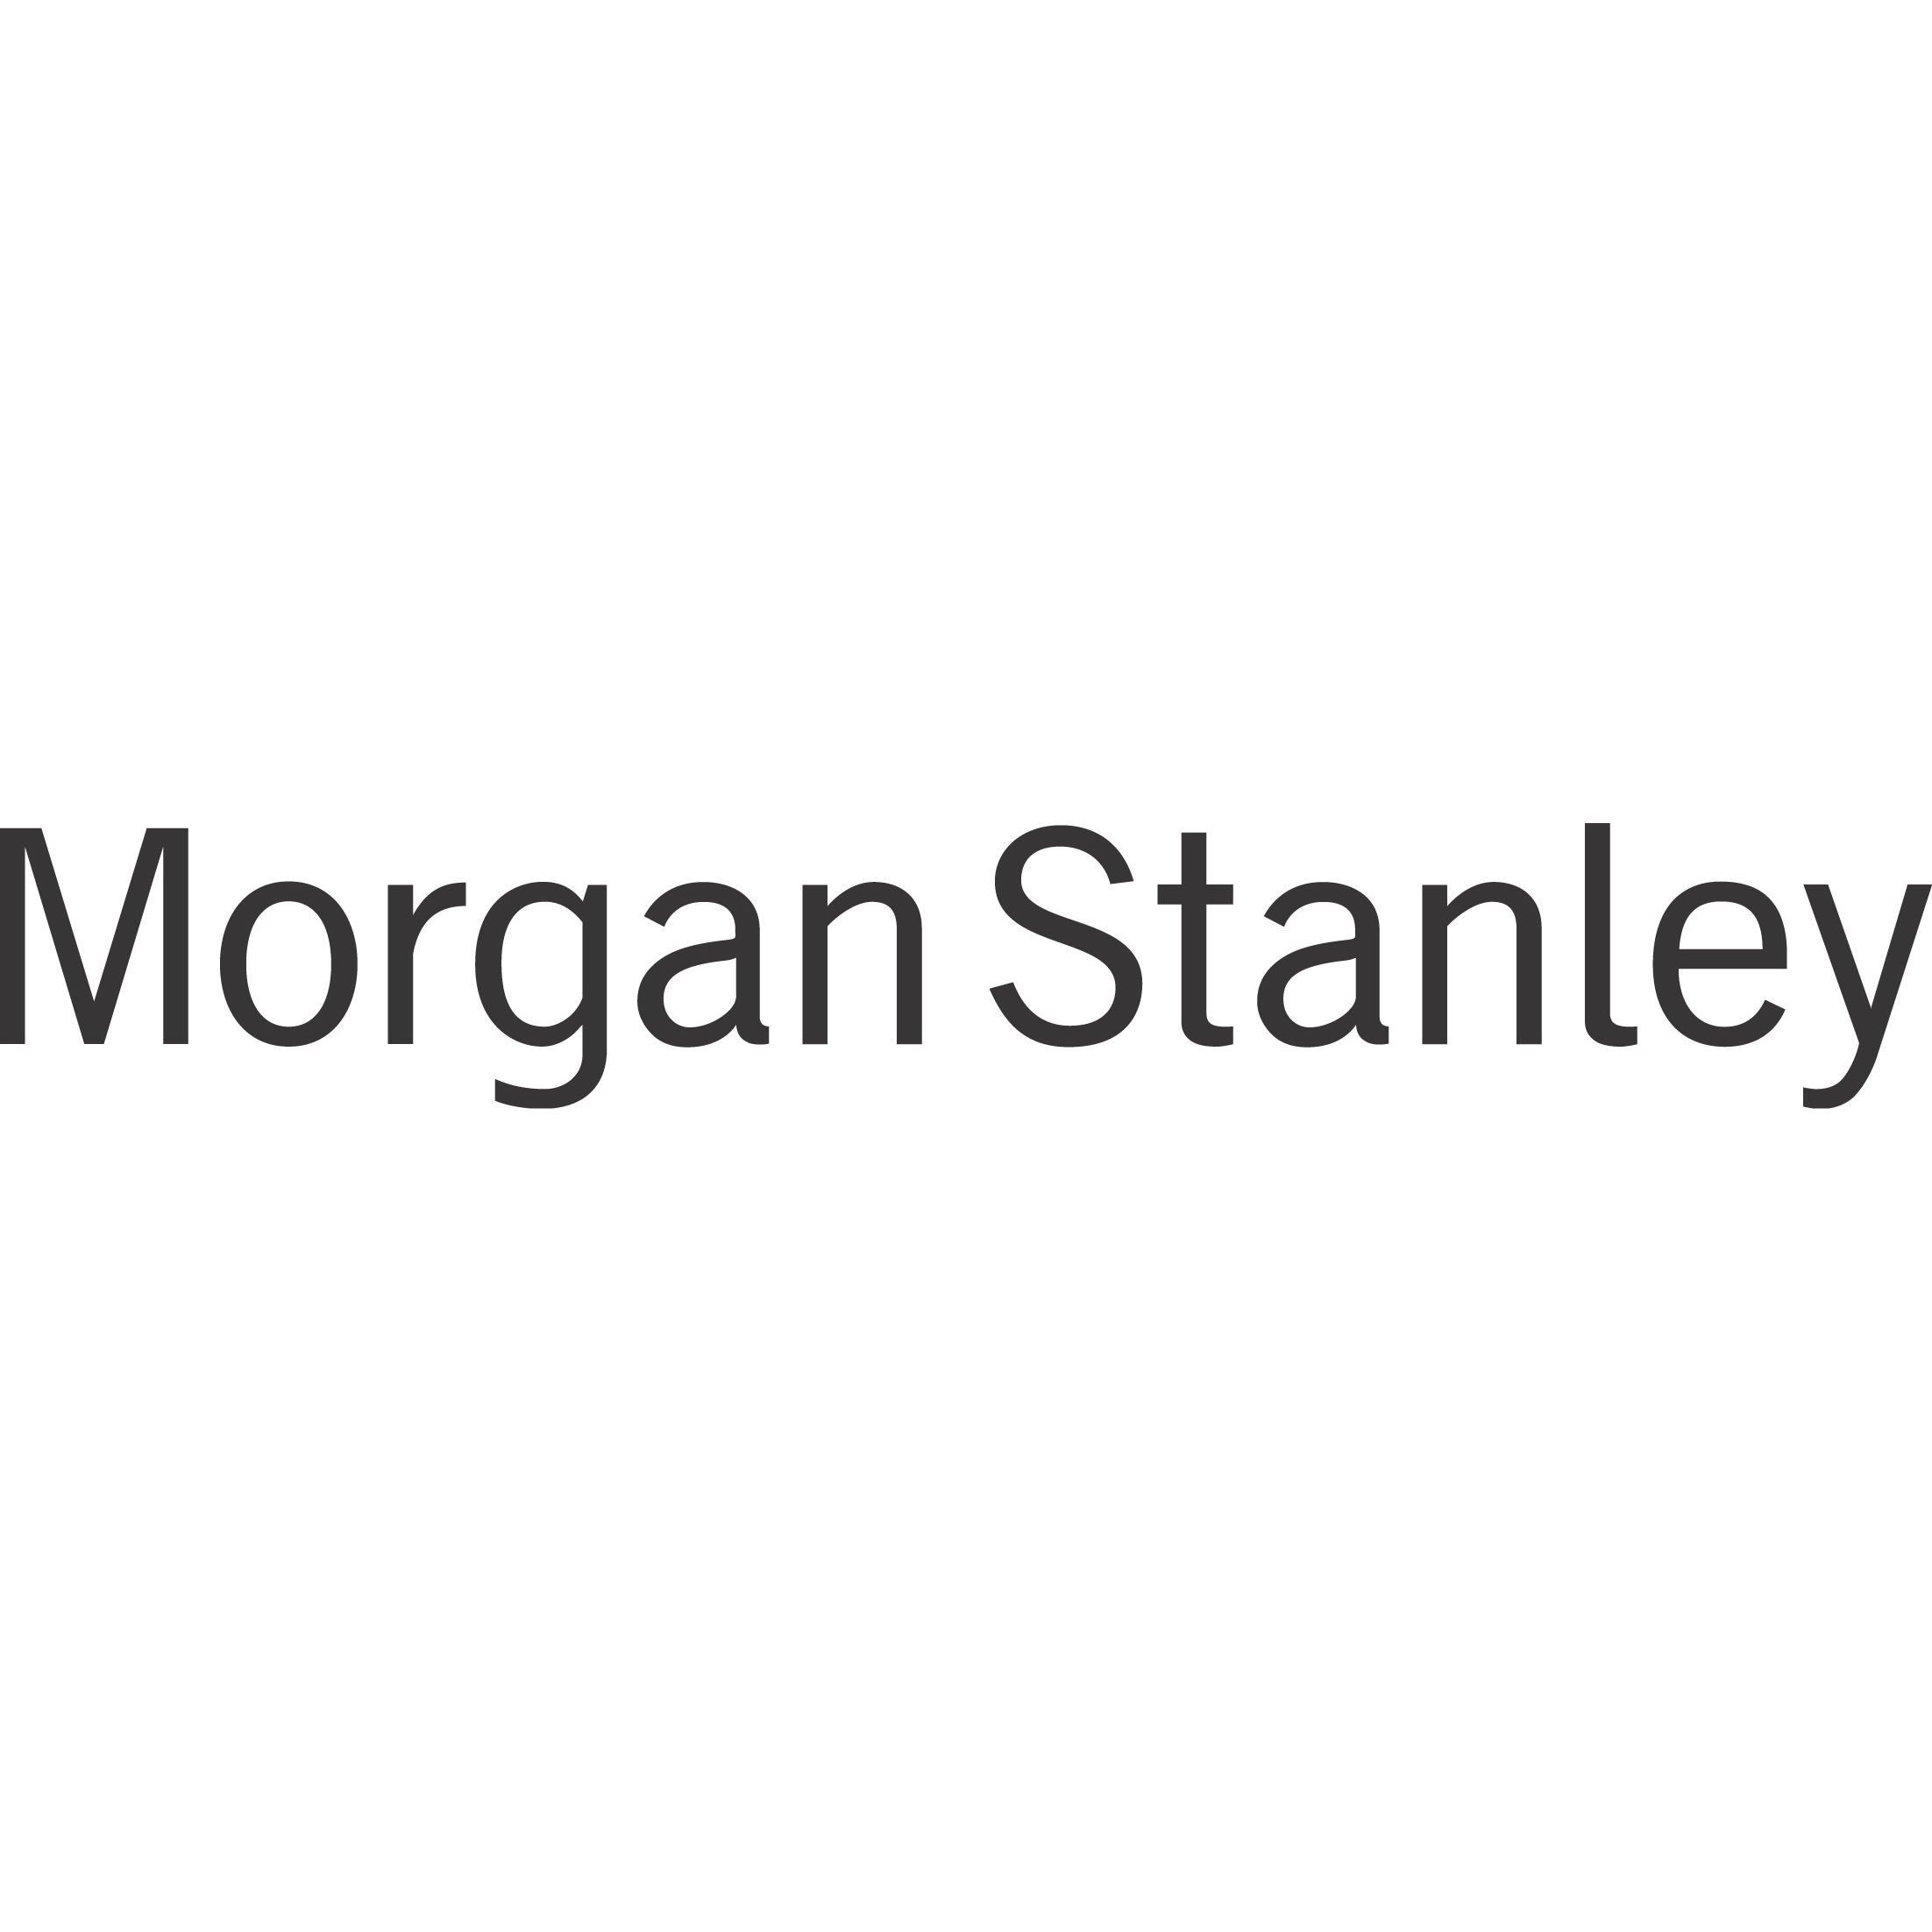 Jimmy Monken - Morgan Stanley | Financial Advisor in Saint Louis,Missouri